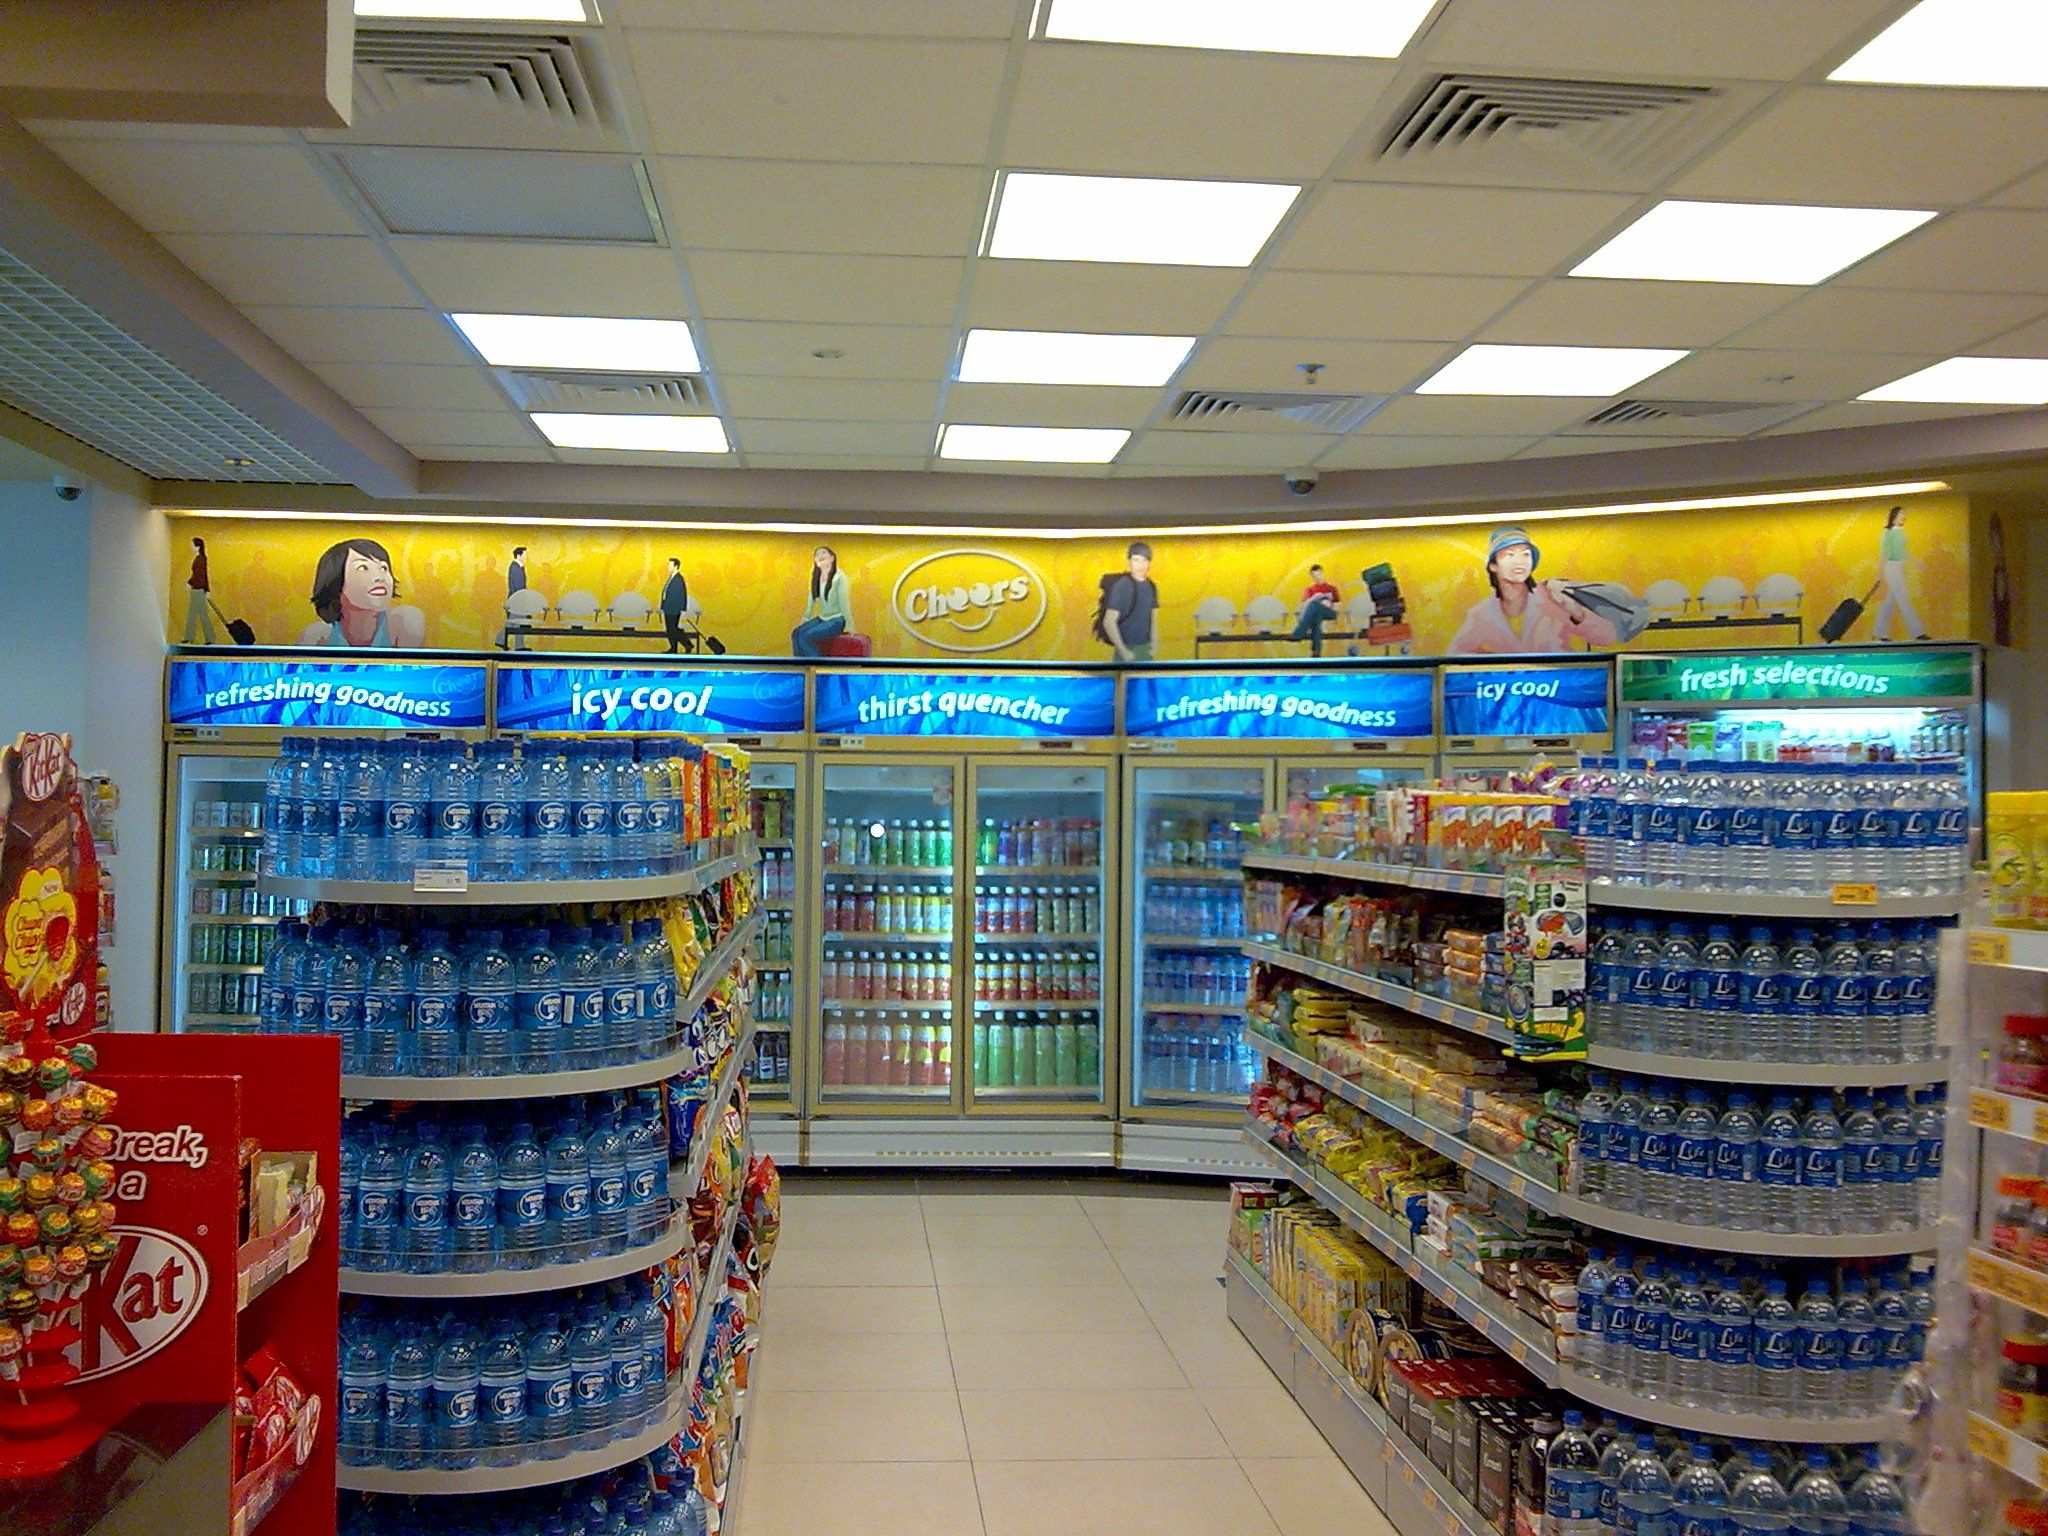 convenience store design an layout supermarket convenience store design by angeli angeles at coroflot - Convenience Store Design Ideas